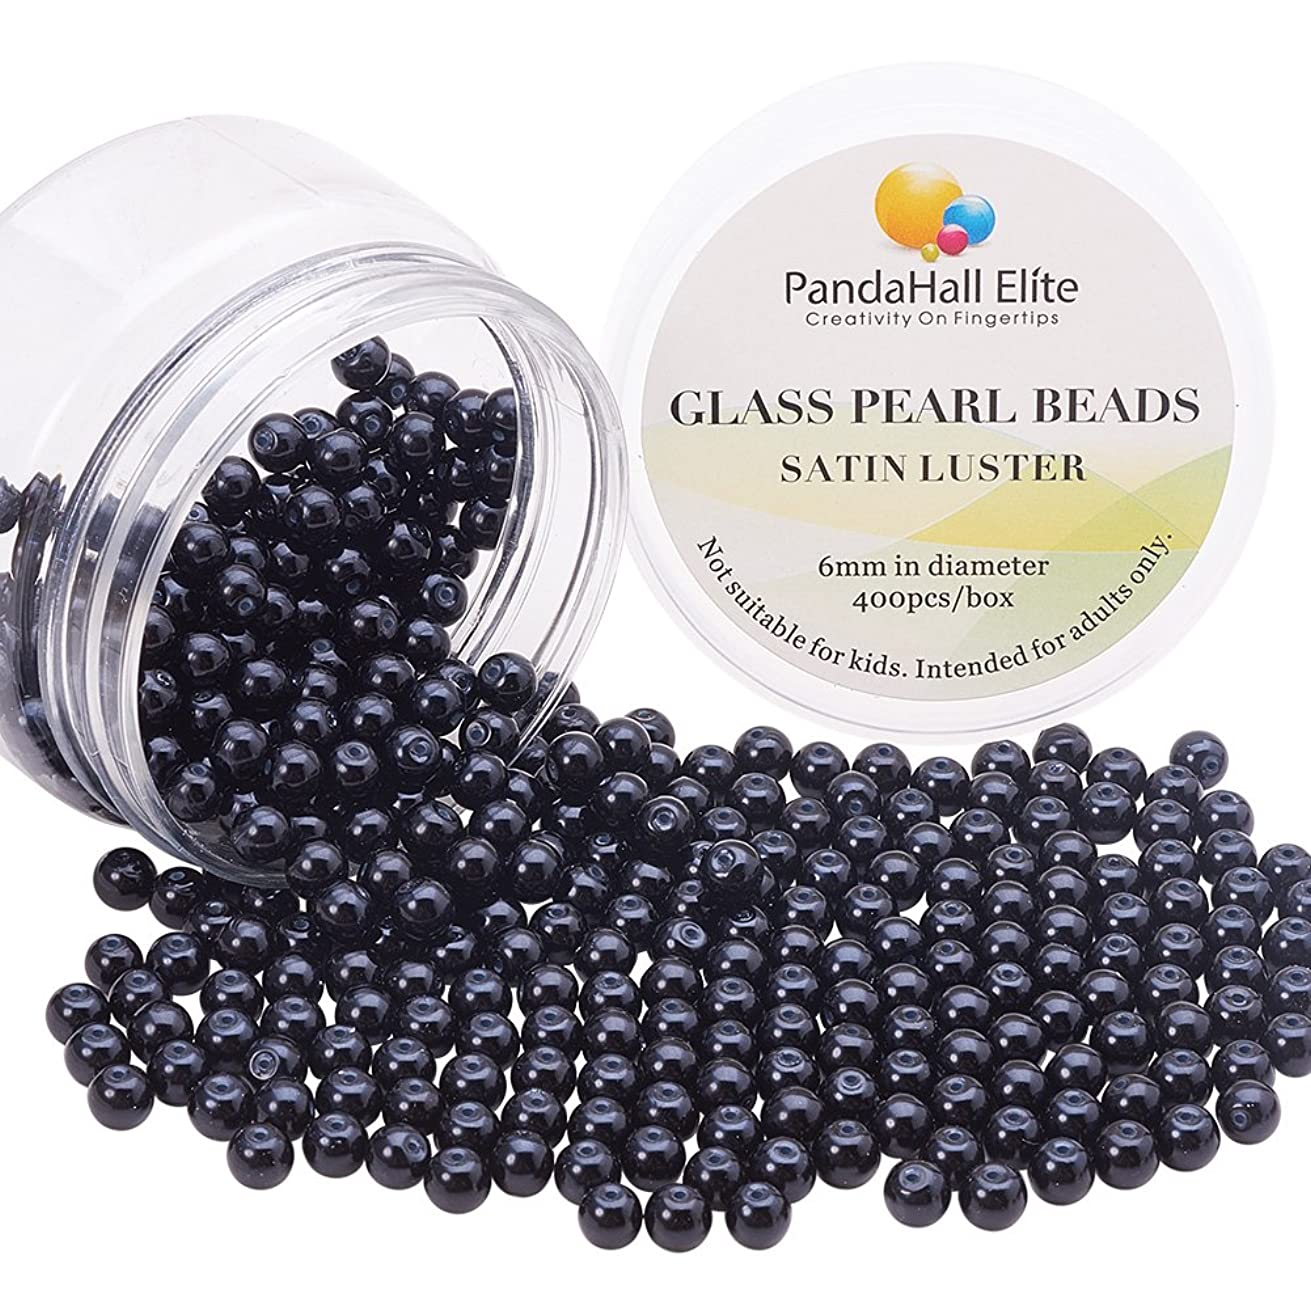 PandaHall Elite About 400 Pcs 6mm Tiny Satin Luster Glass Pearl Bead Round Loose Spacer Beads for Jewelry Making Black